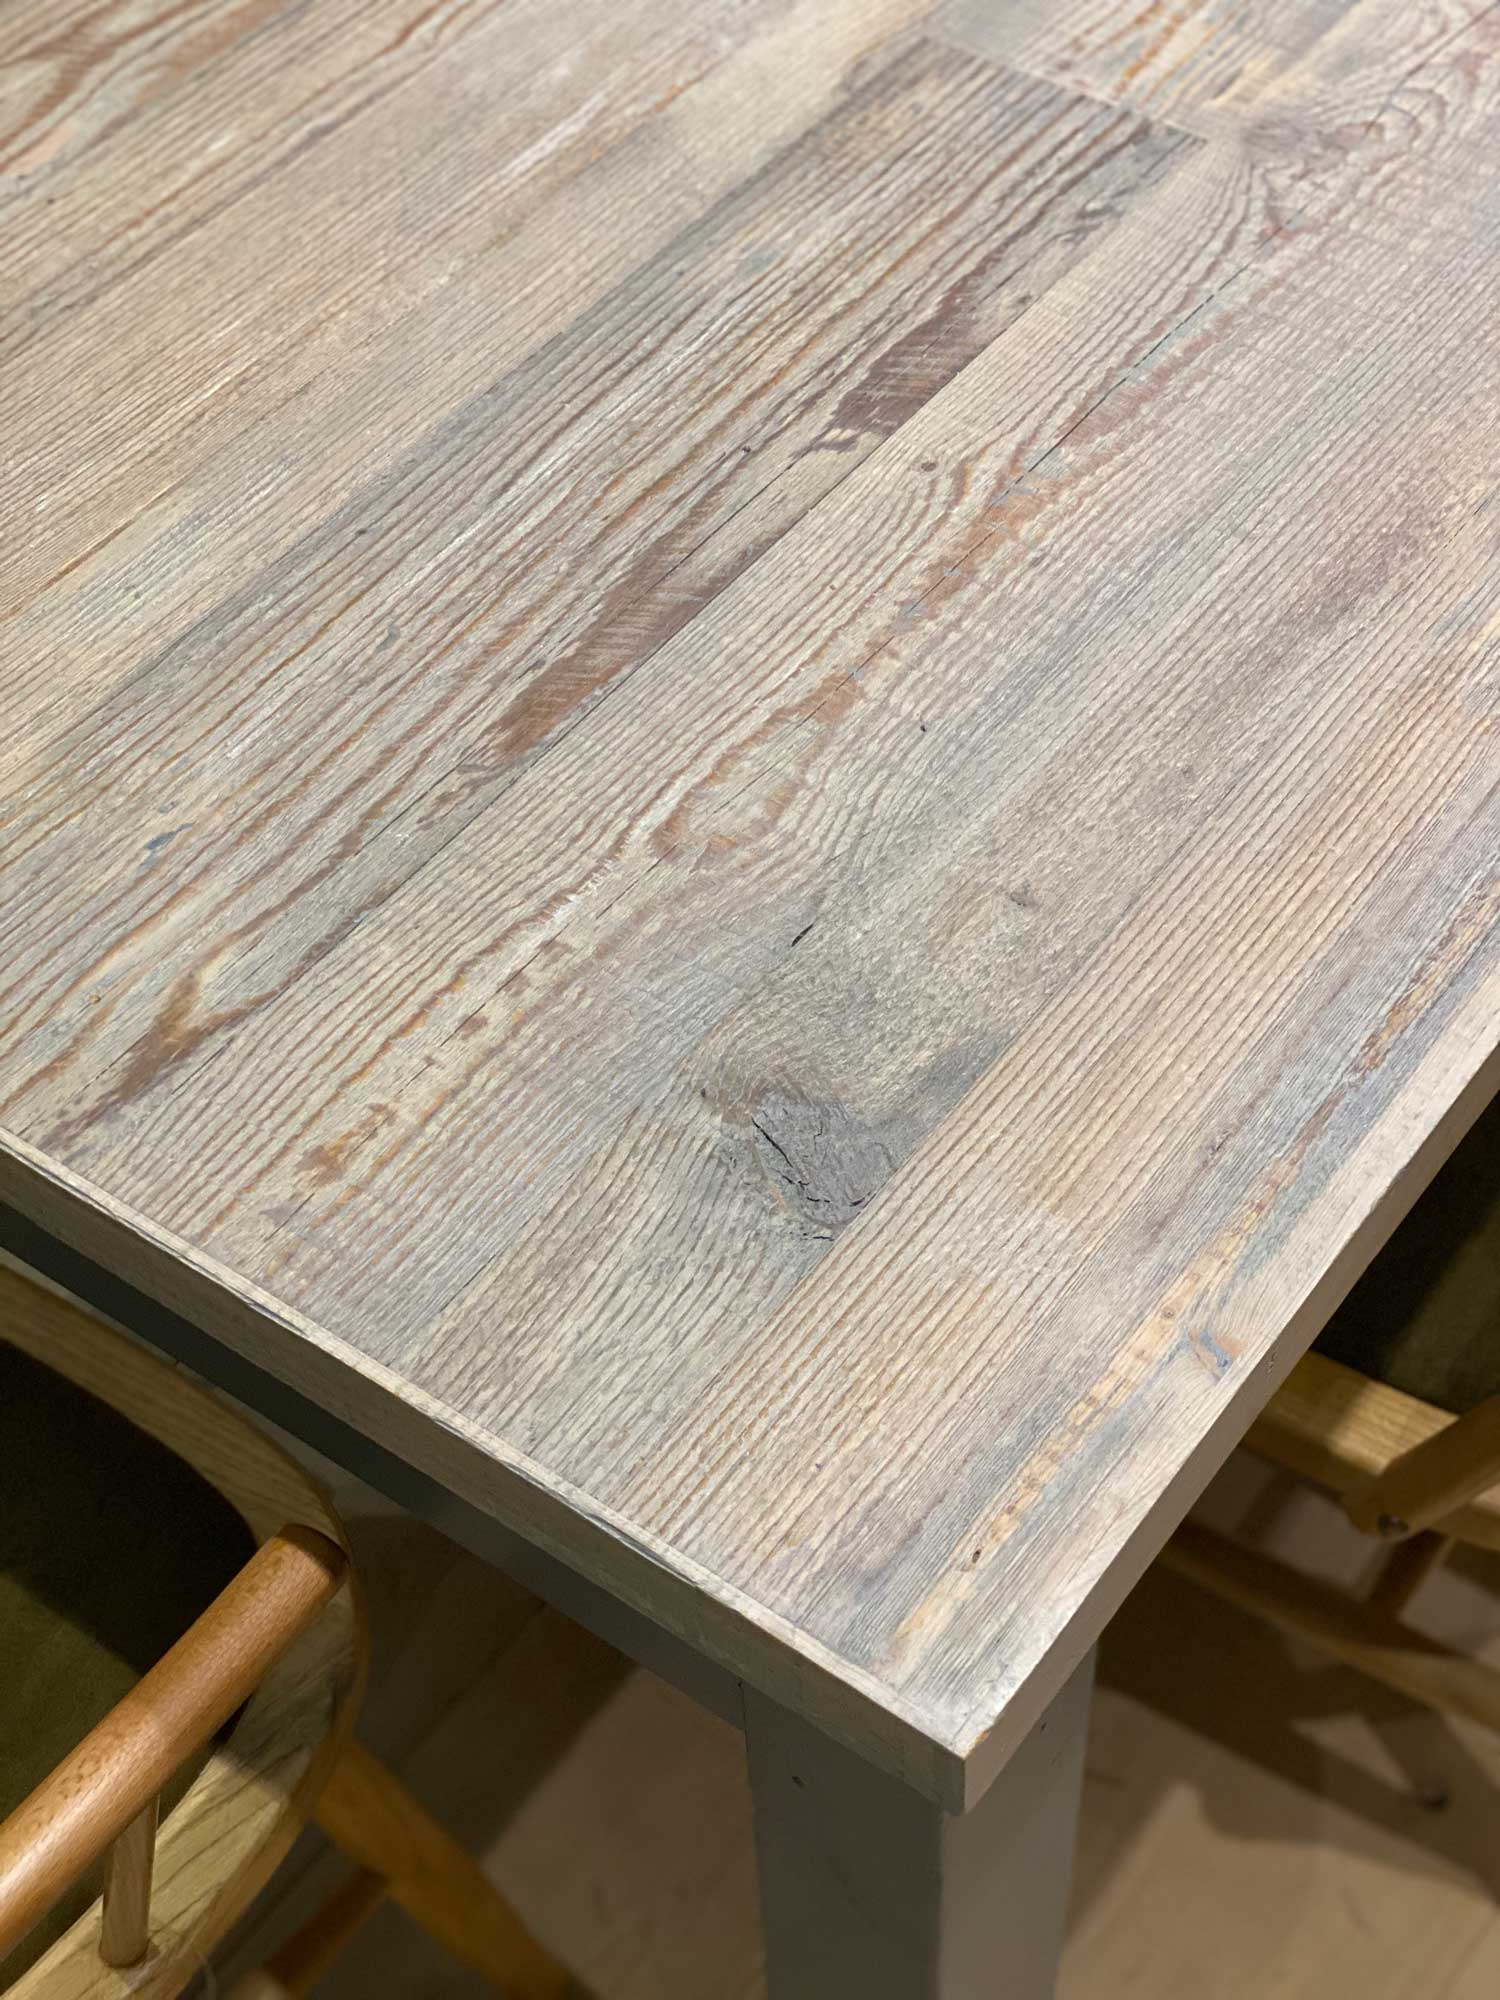 Textured reclaimed whitewash table top